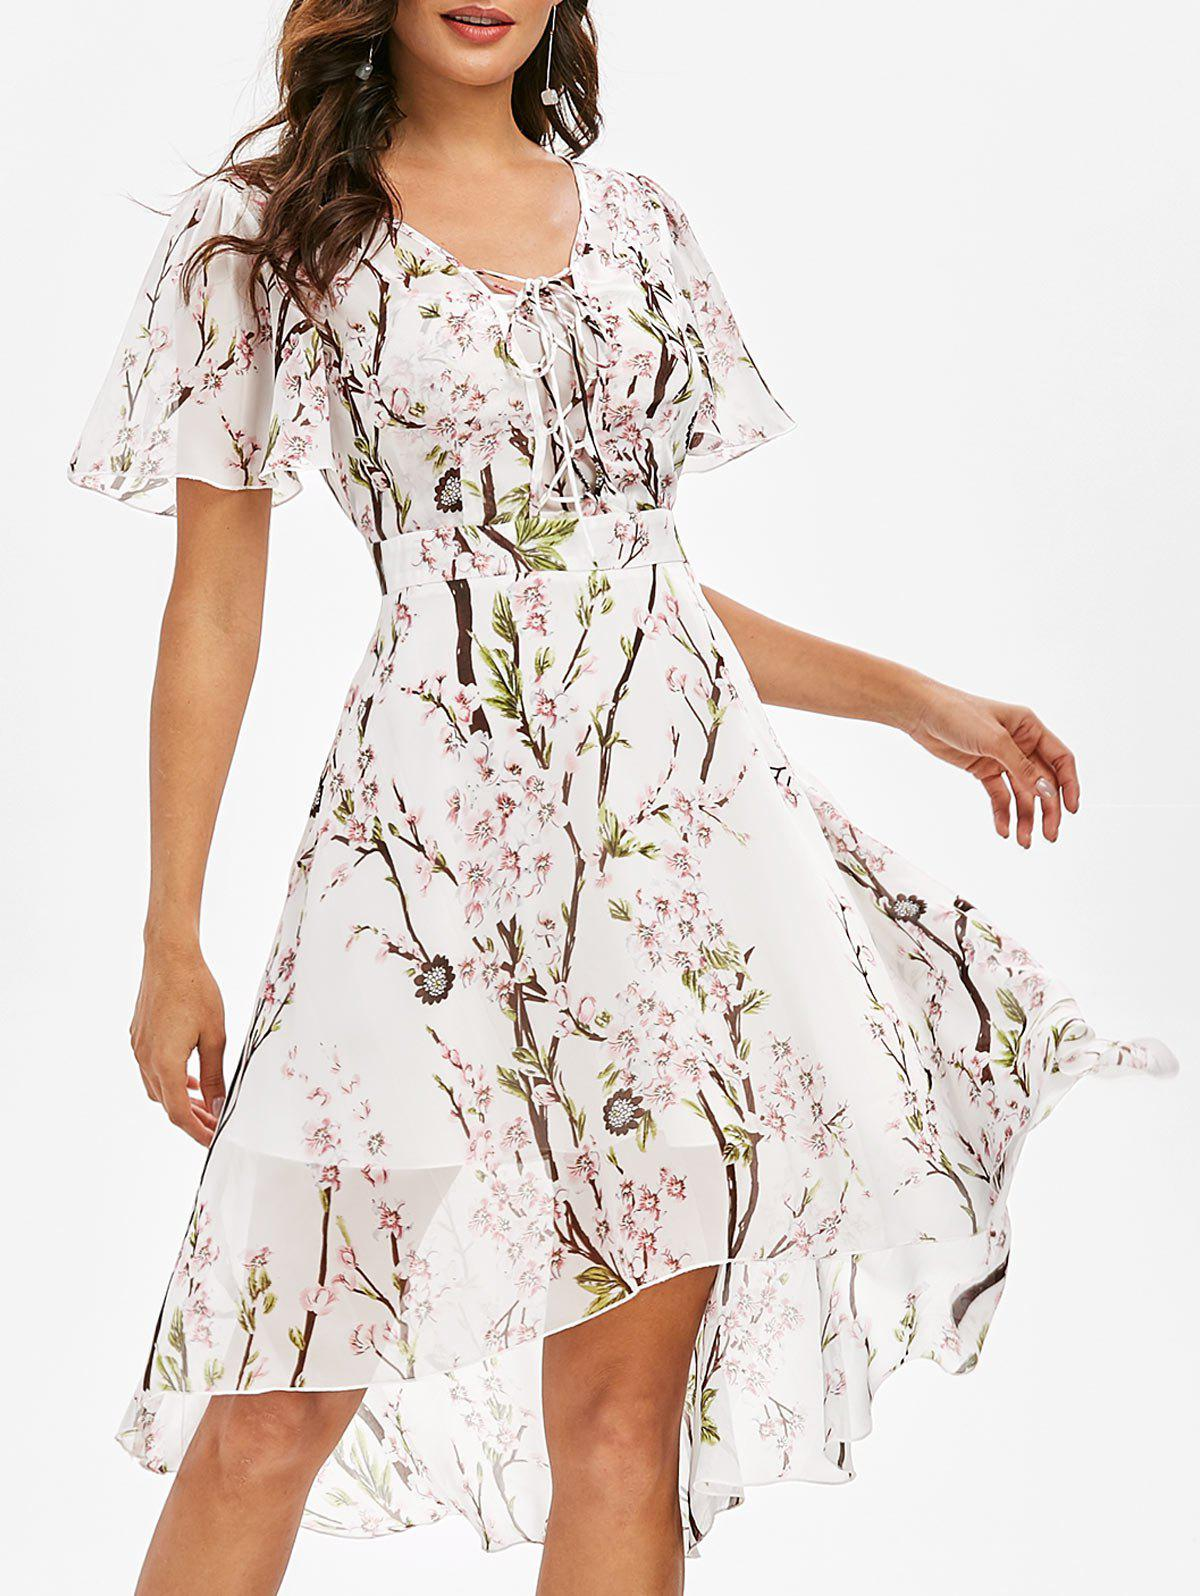 Fashion Flower Print Lace-up High Low Midi Dress